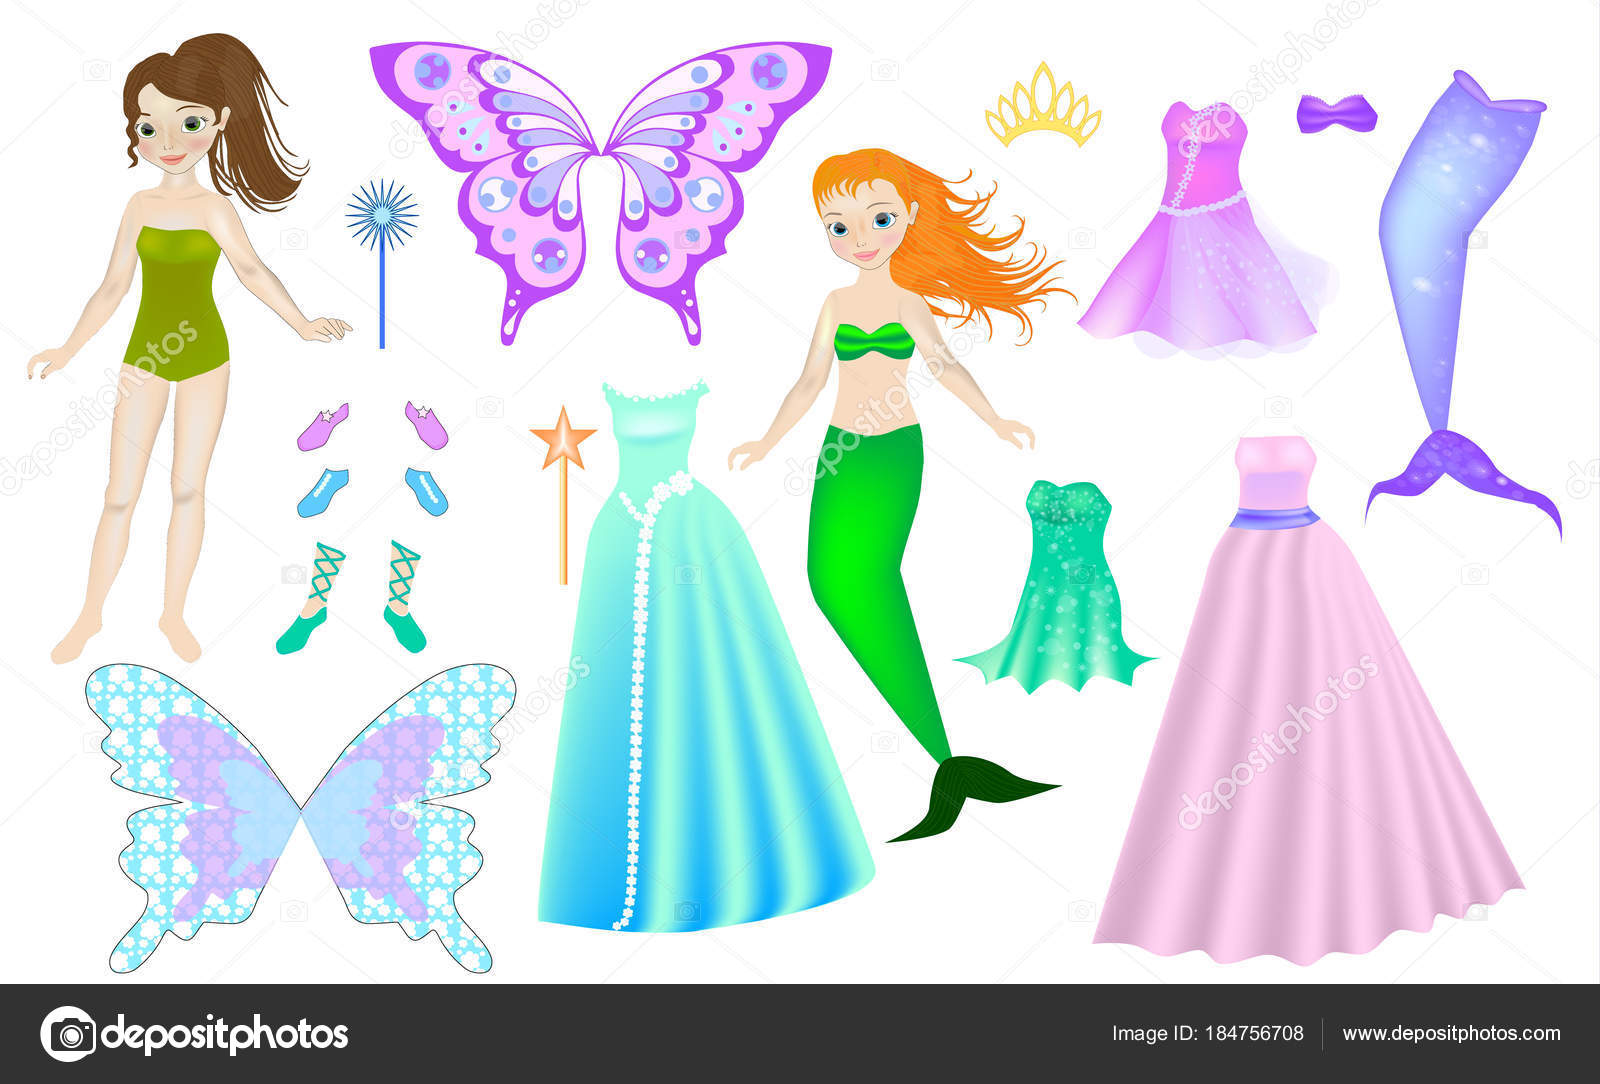 Paper doll dress up template gallery template design ideas for Uo forever templates